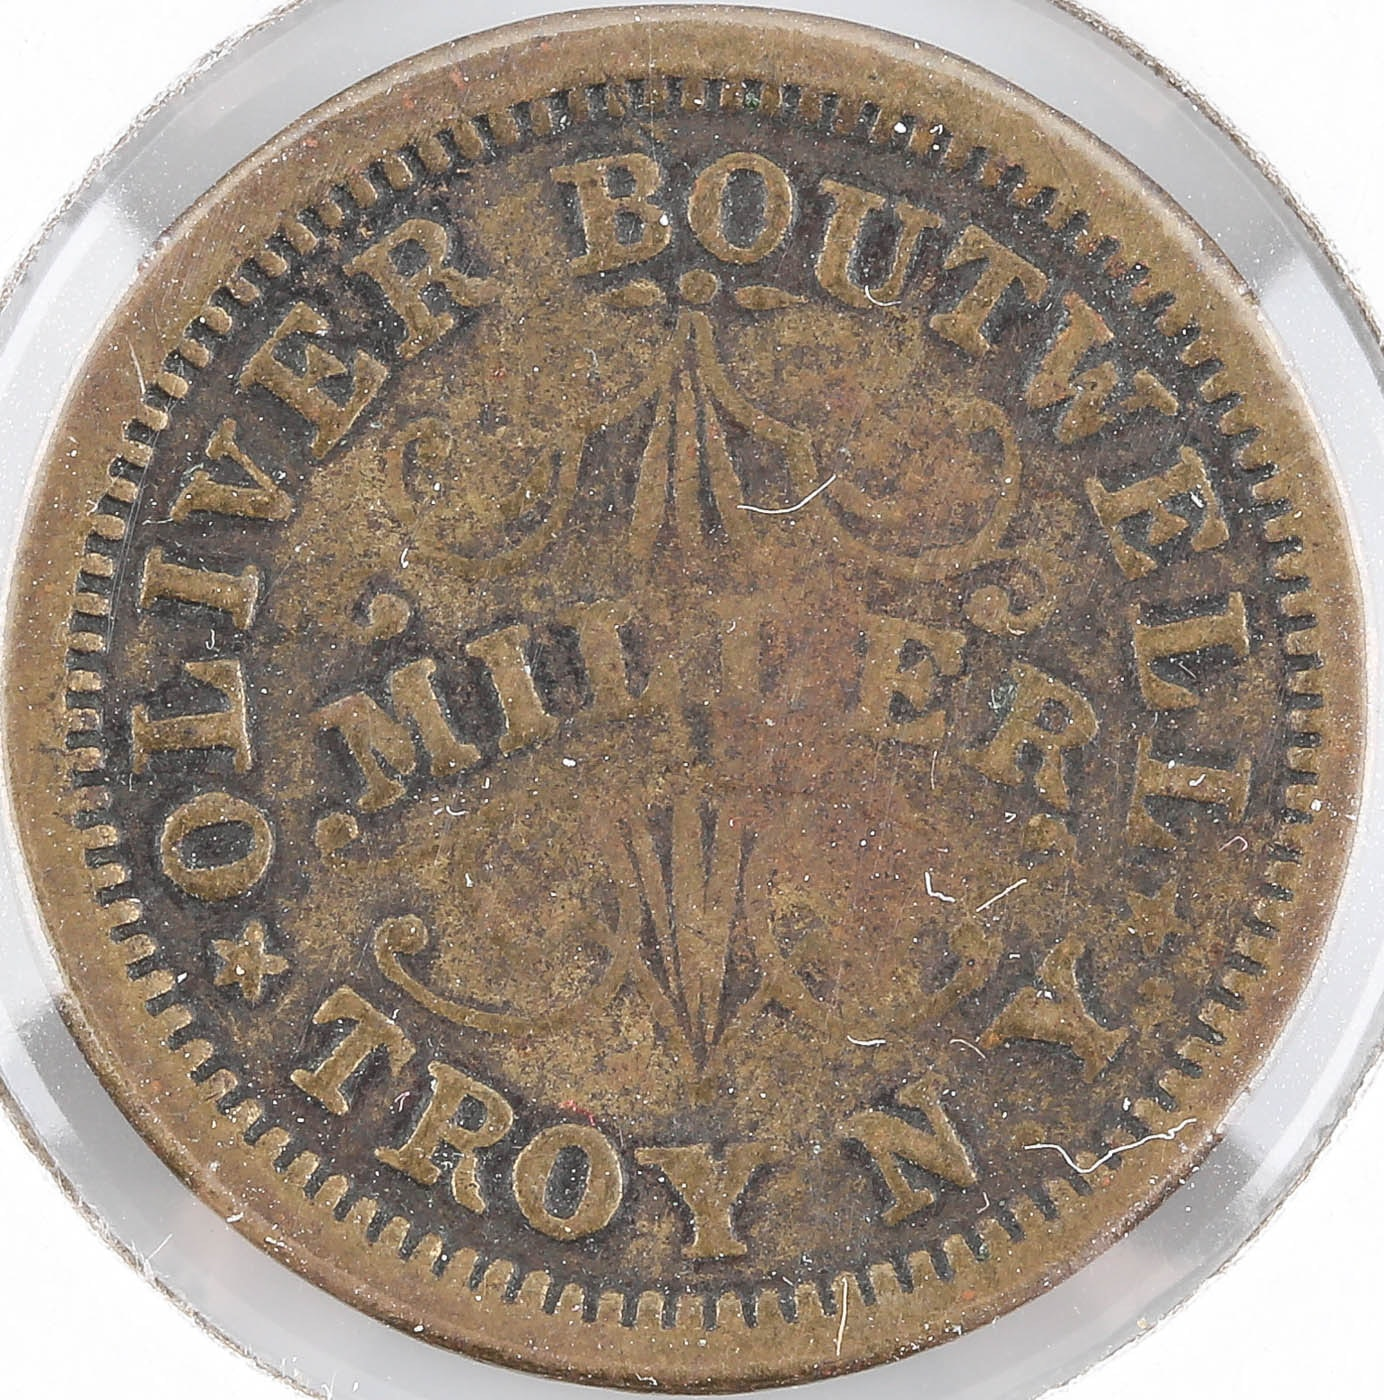 1863 Civil War Token Oliver Boutwell - Miller